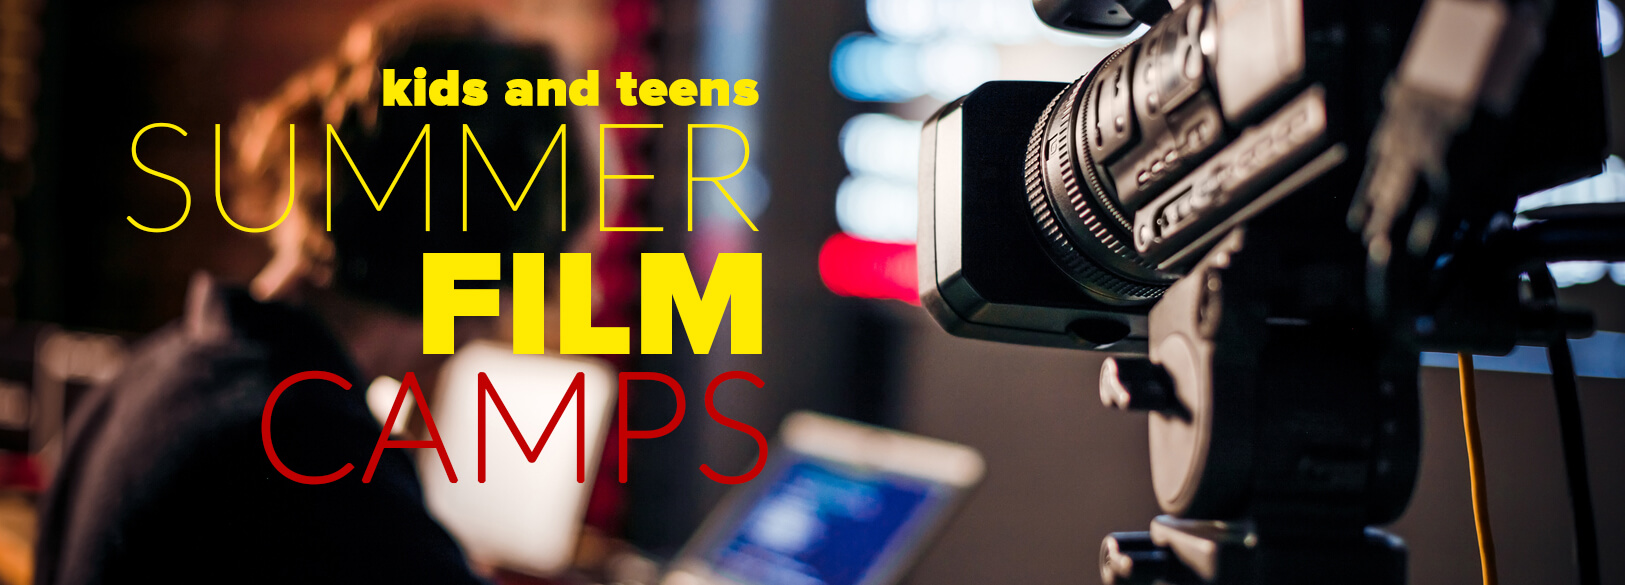 Kids summer film camps